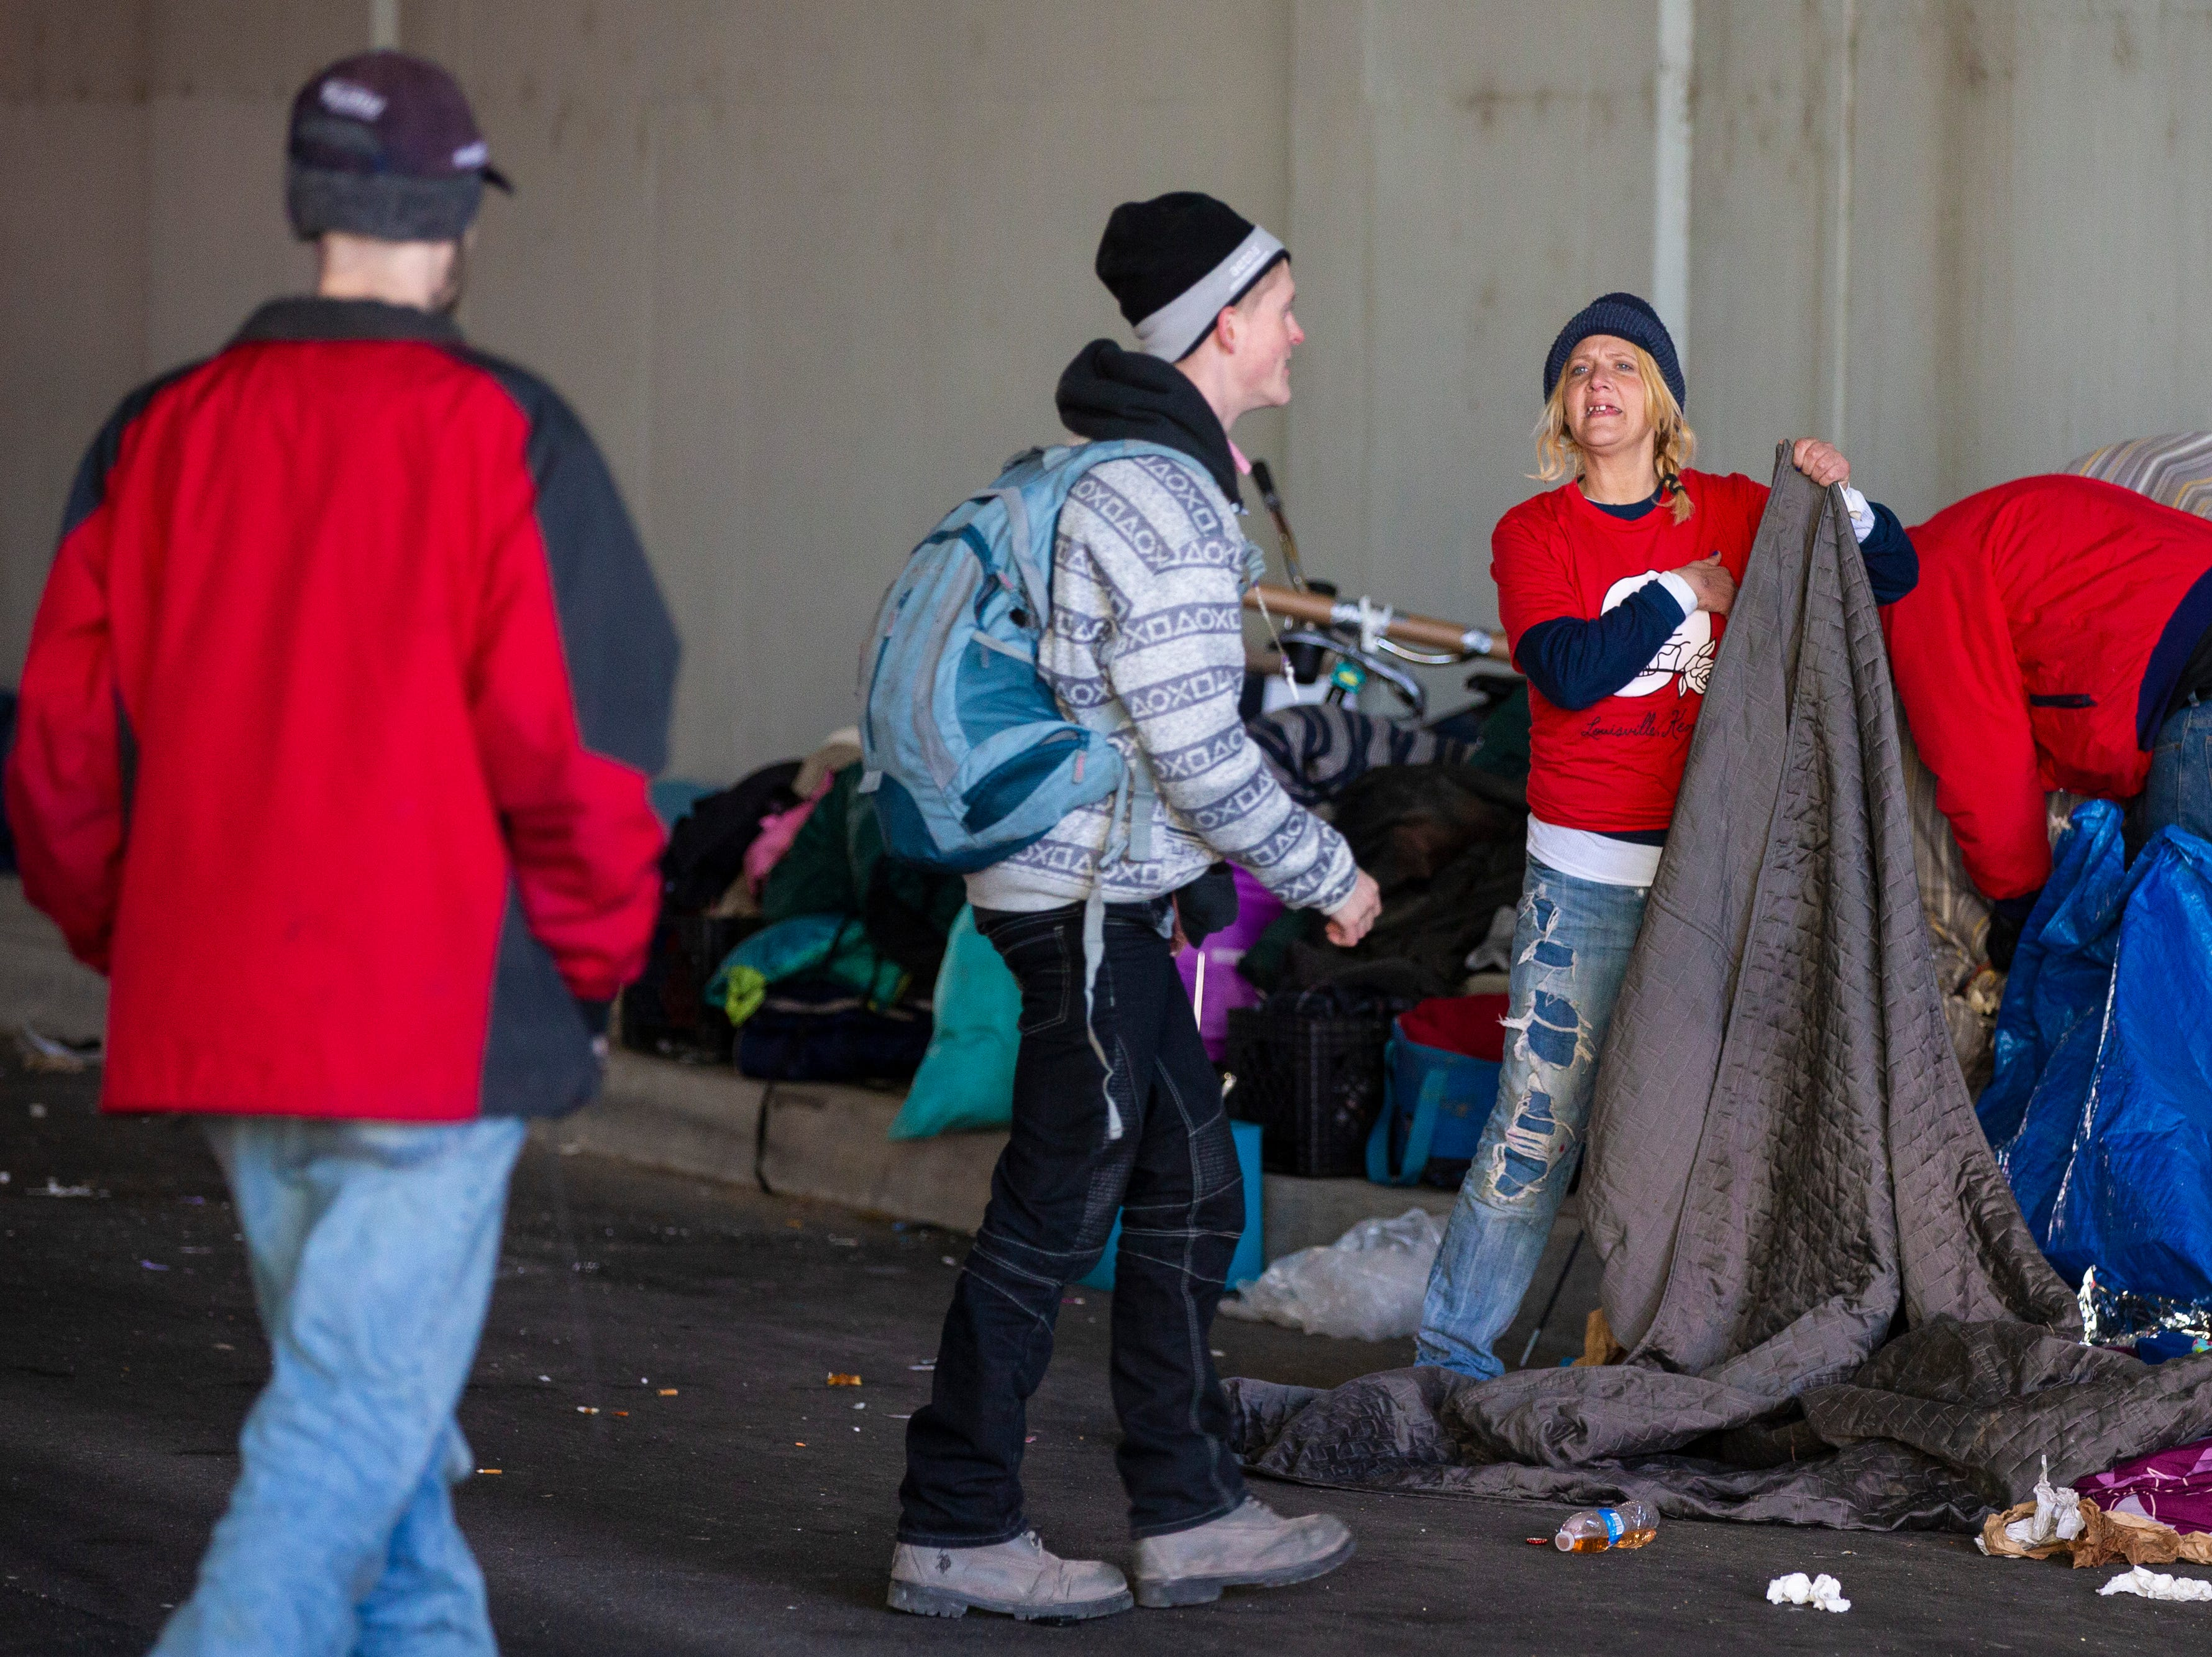 Dani Crisp, right, collects her family's belongings as city crews cleaned out the homeless camp at the intersection of Jackson and Jefferson streets Monday morning. April 1, 2019